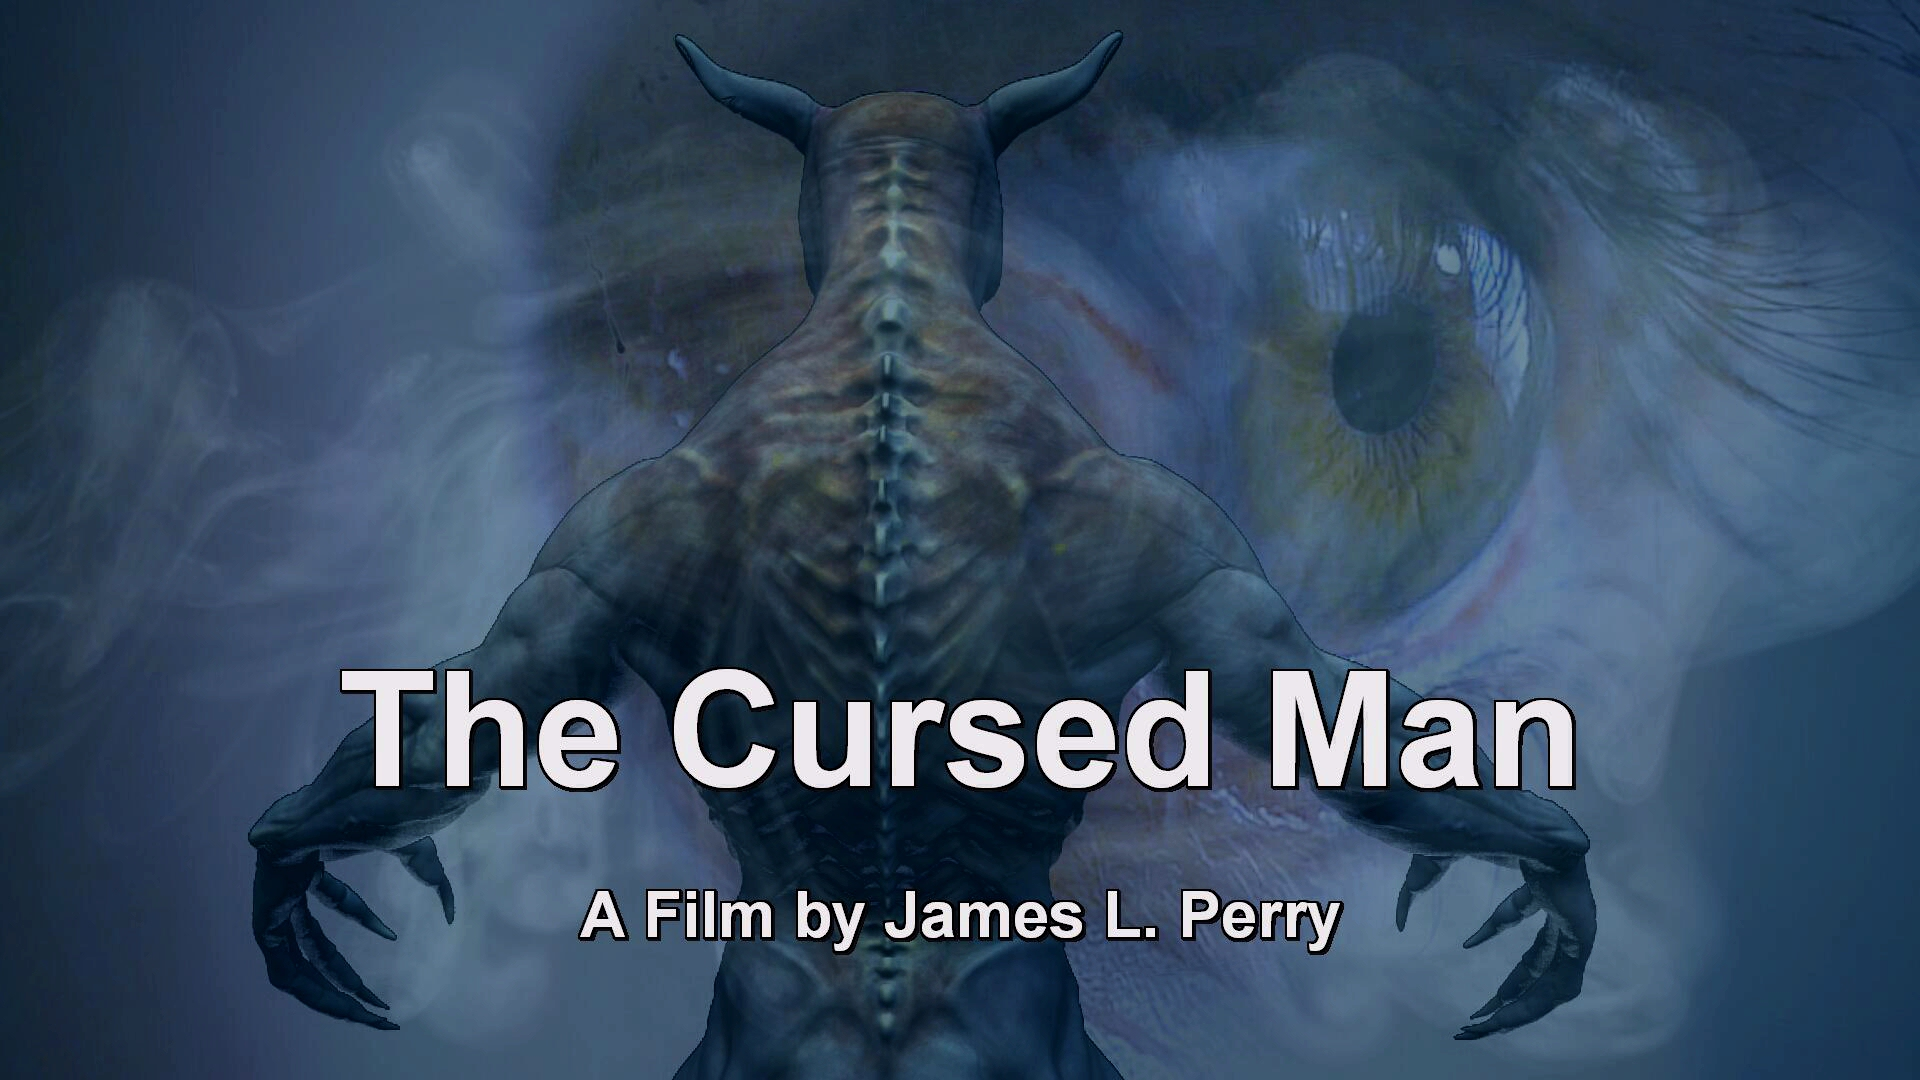 THE CURSED MAN - movie poster